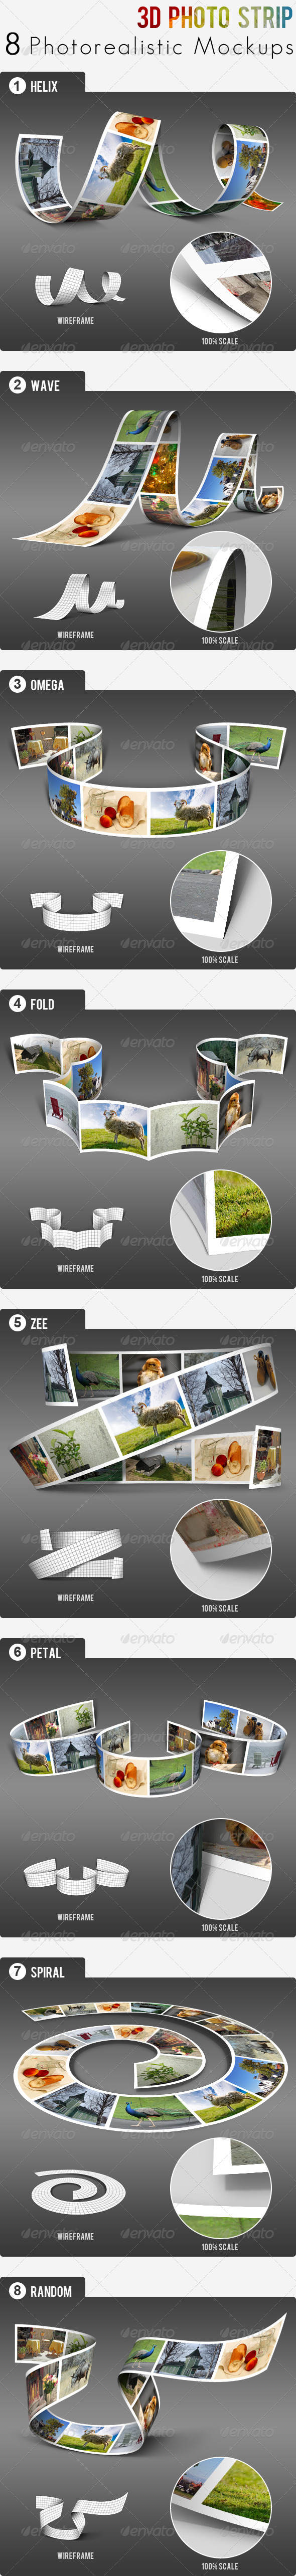 3D Photo Strip Photorealistic Mockups